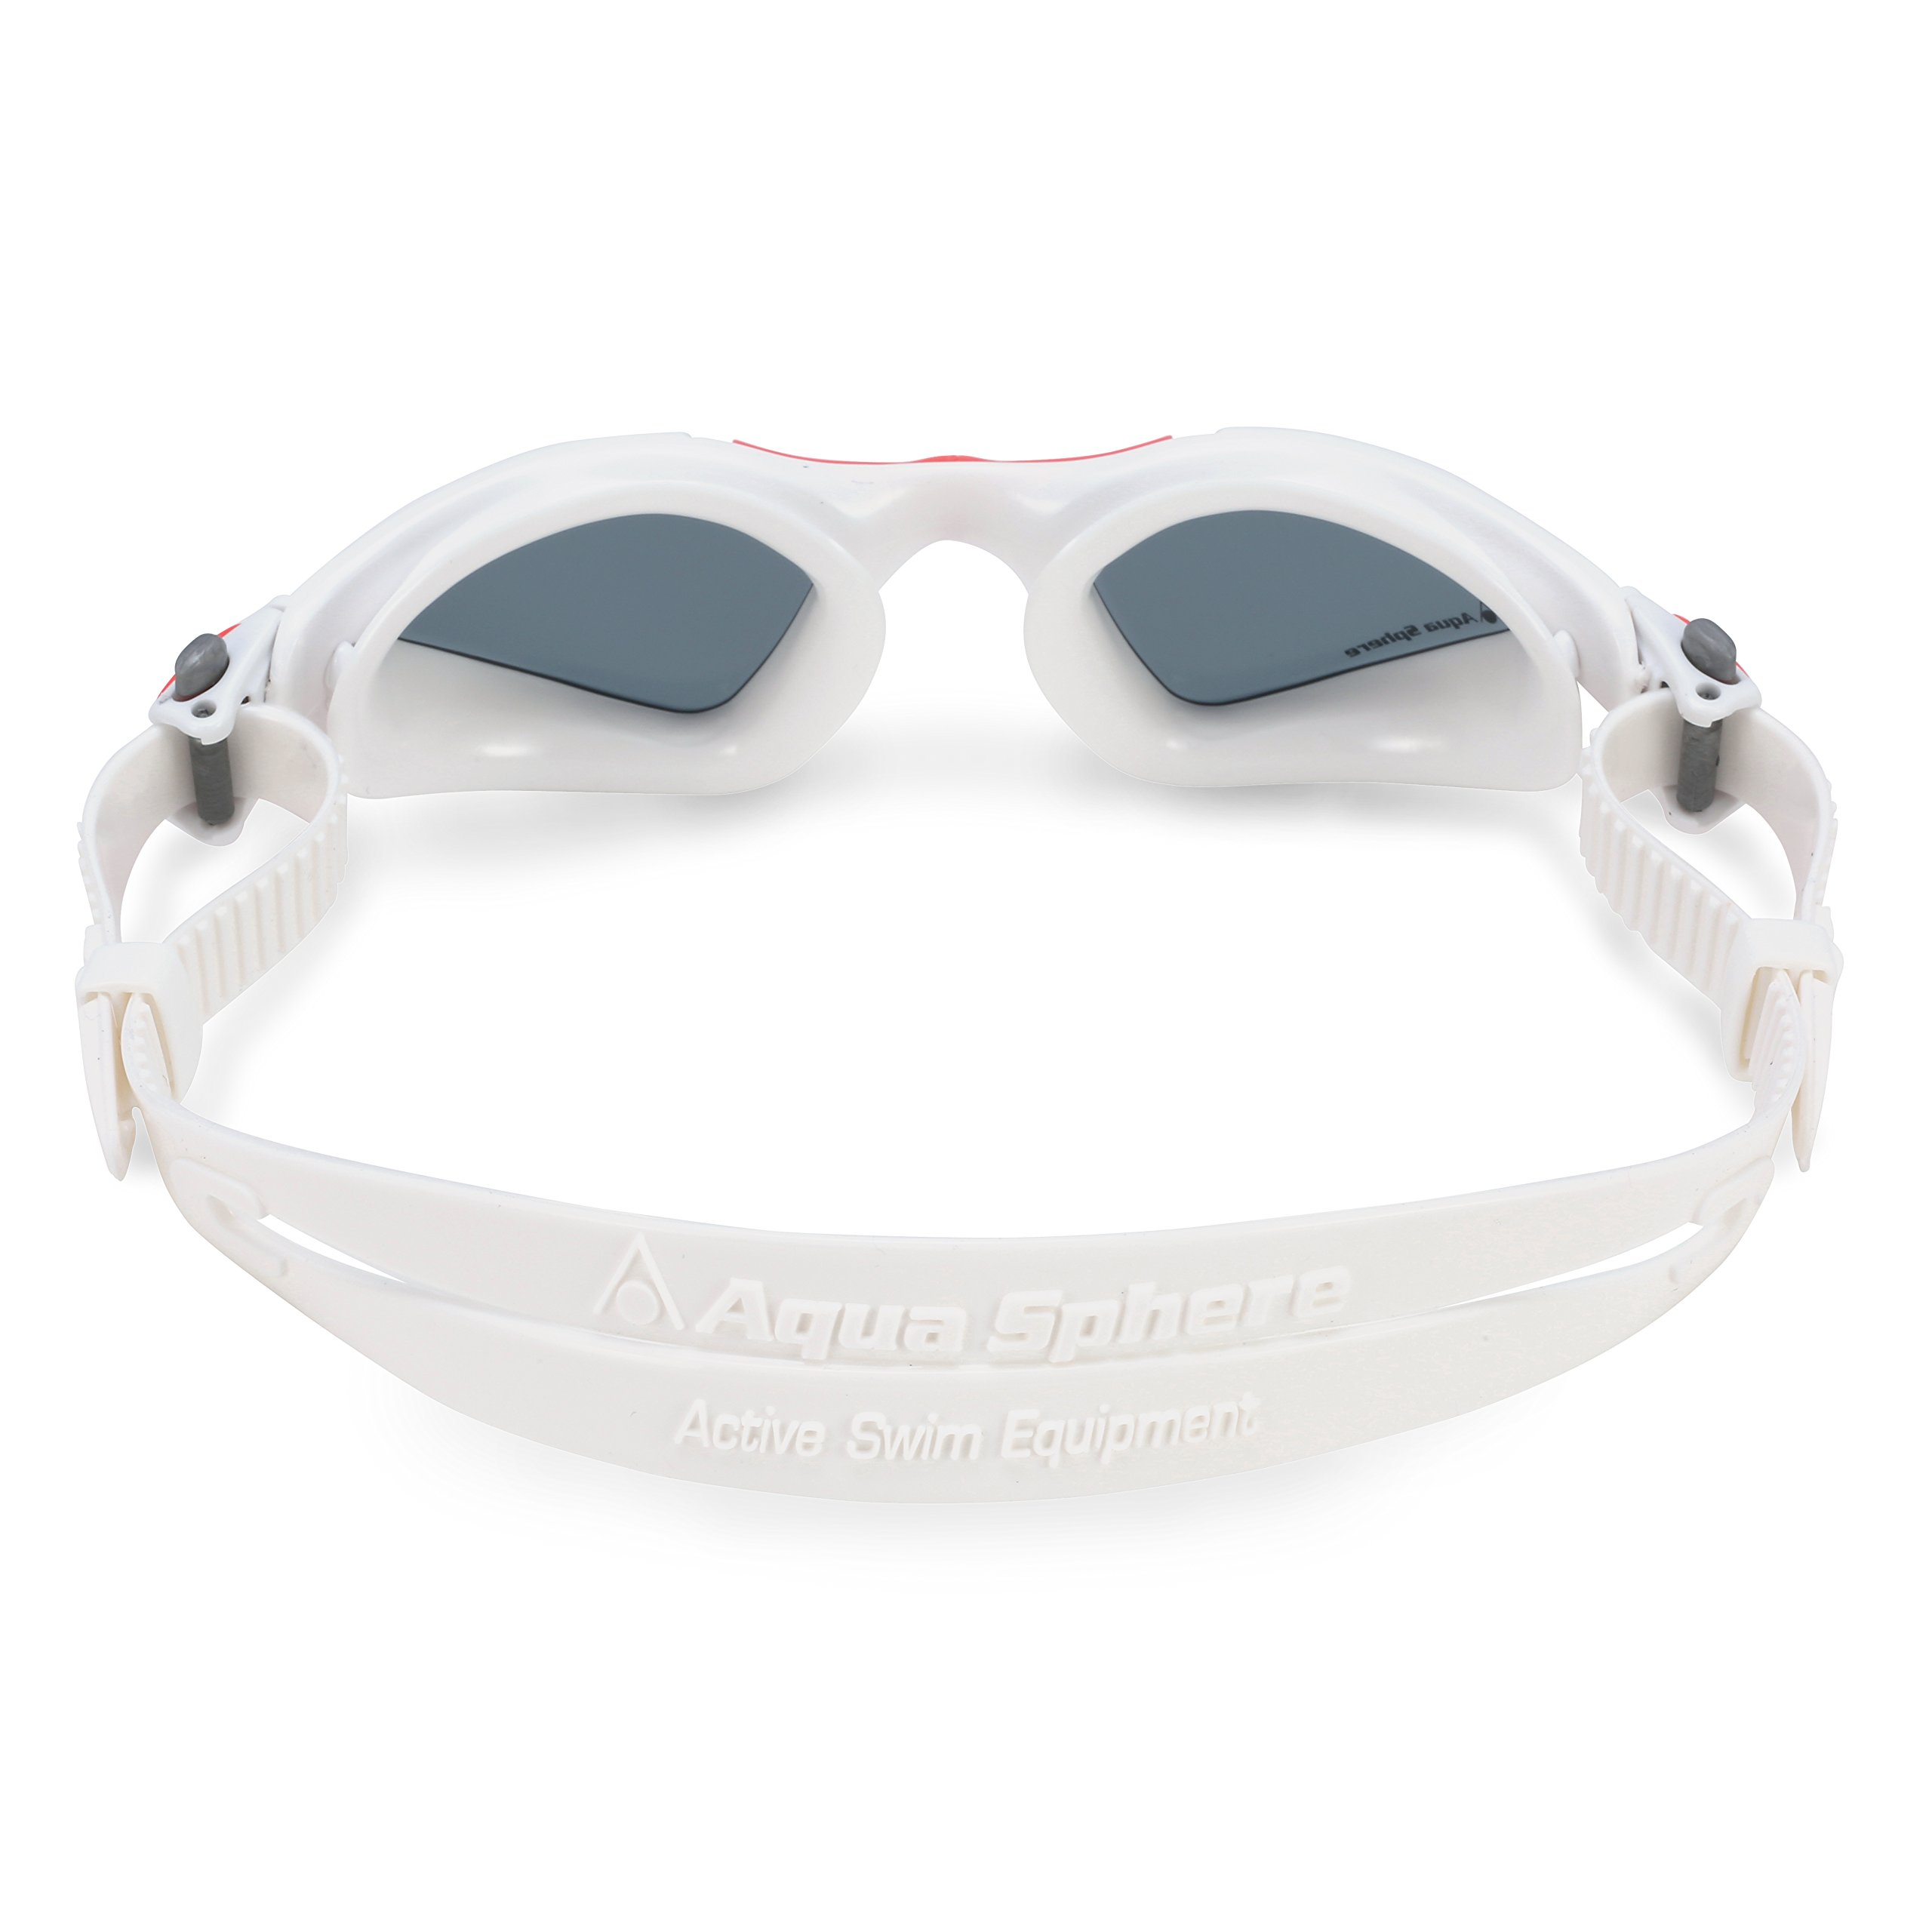 Aqua Sphere Kayenne Ladies Swimming Goggles Smoke Lens, White & Coral UV Protection Anti Fog Swim Goggles for Women by Aqua Sphere (Image #2)